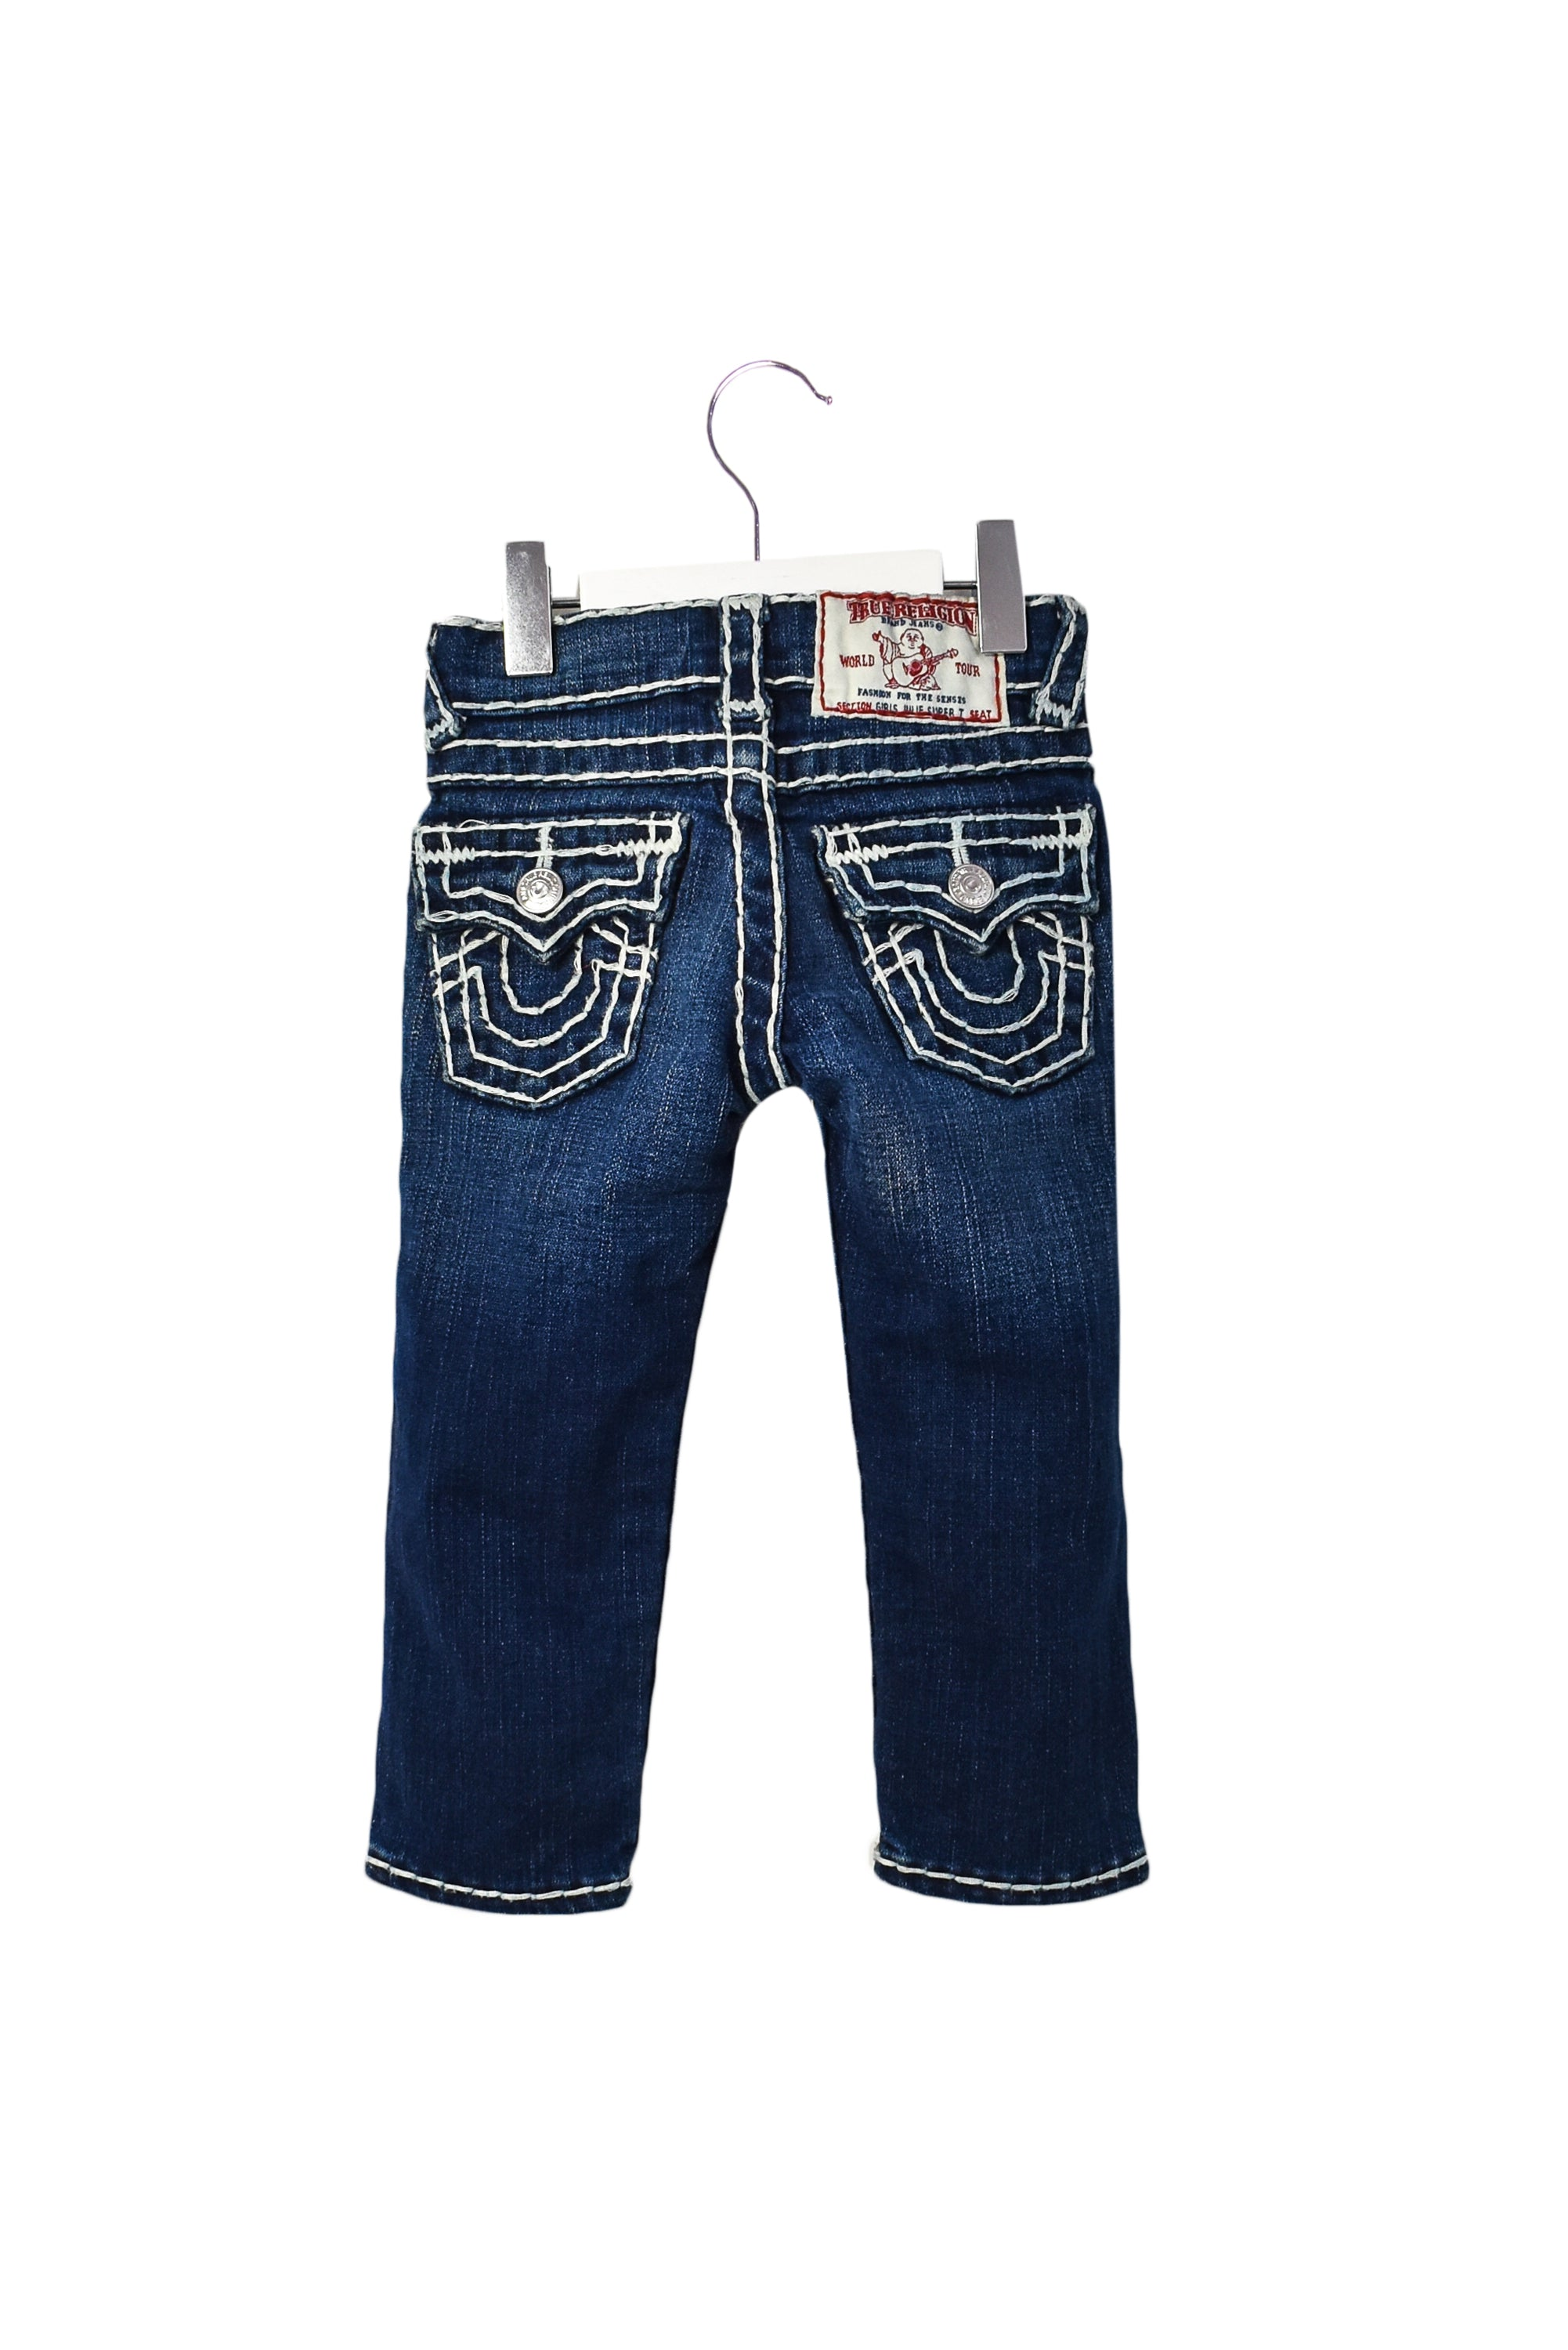 10006586 True Religion Kids~Jeans 2T at Retykle